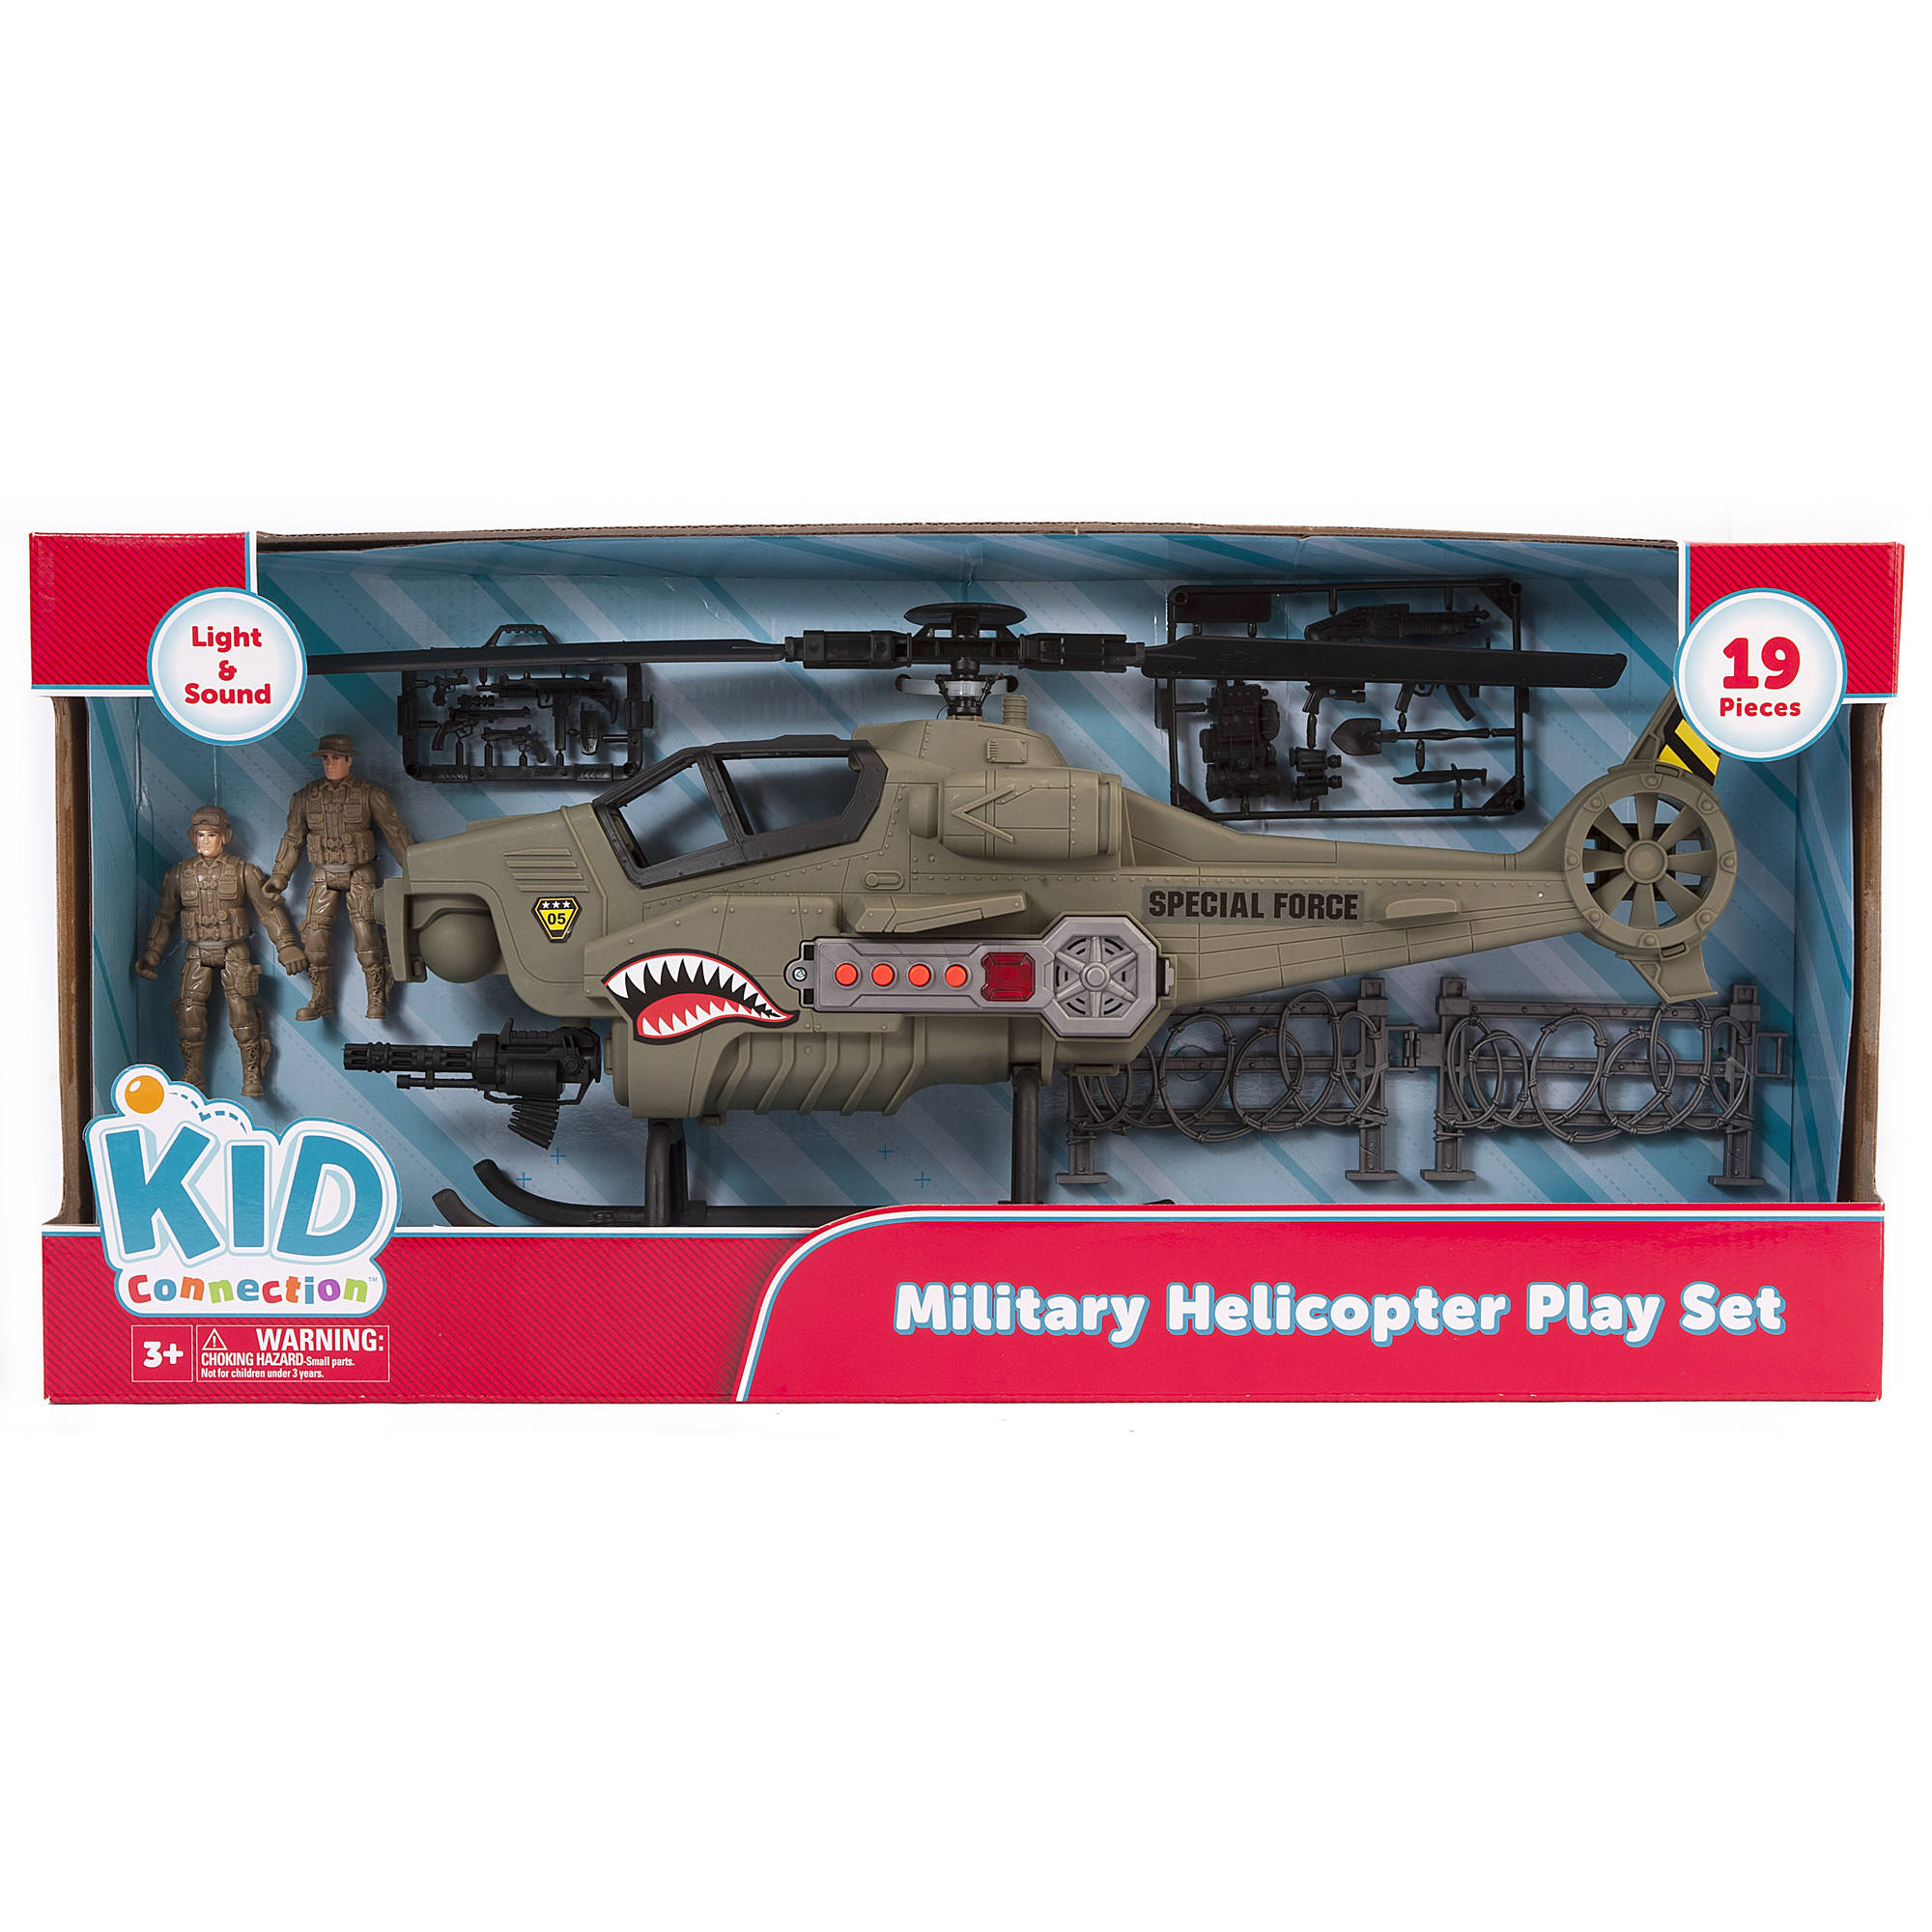 Walmart Helicopter Toys For Boys : The best of helicopter toys for toddlers pics children